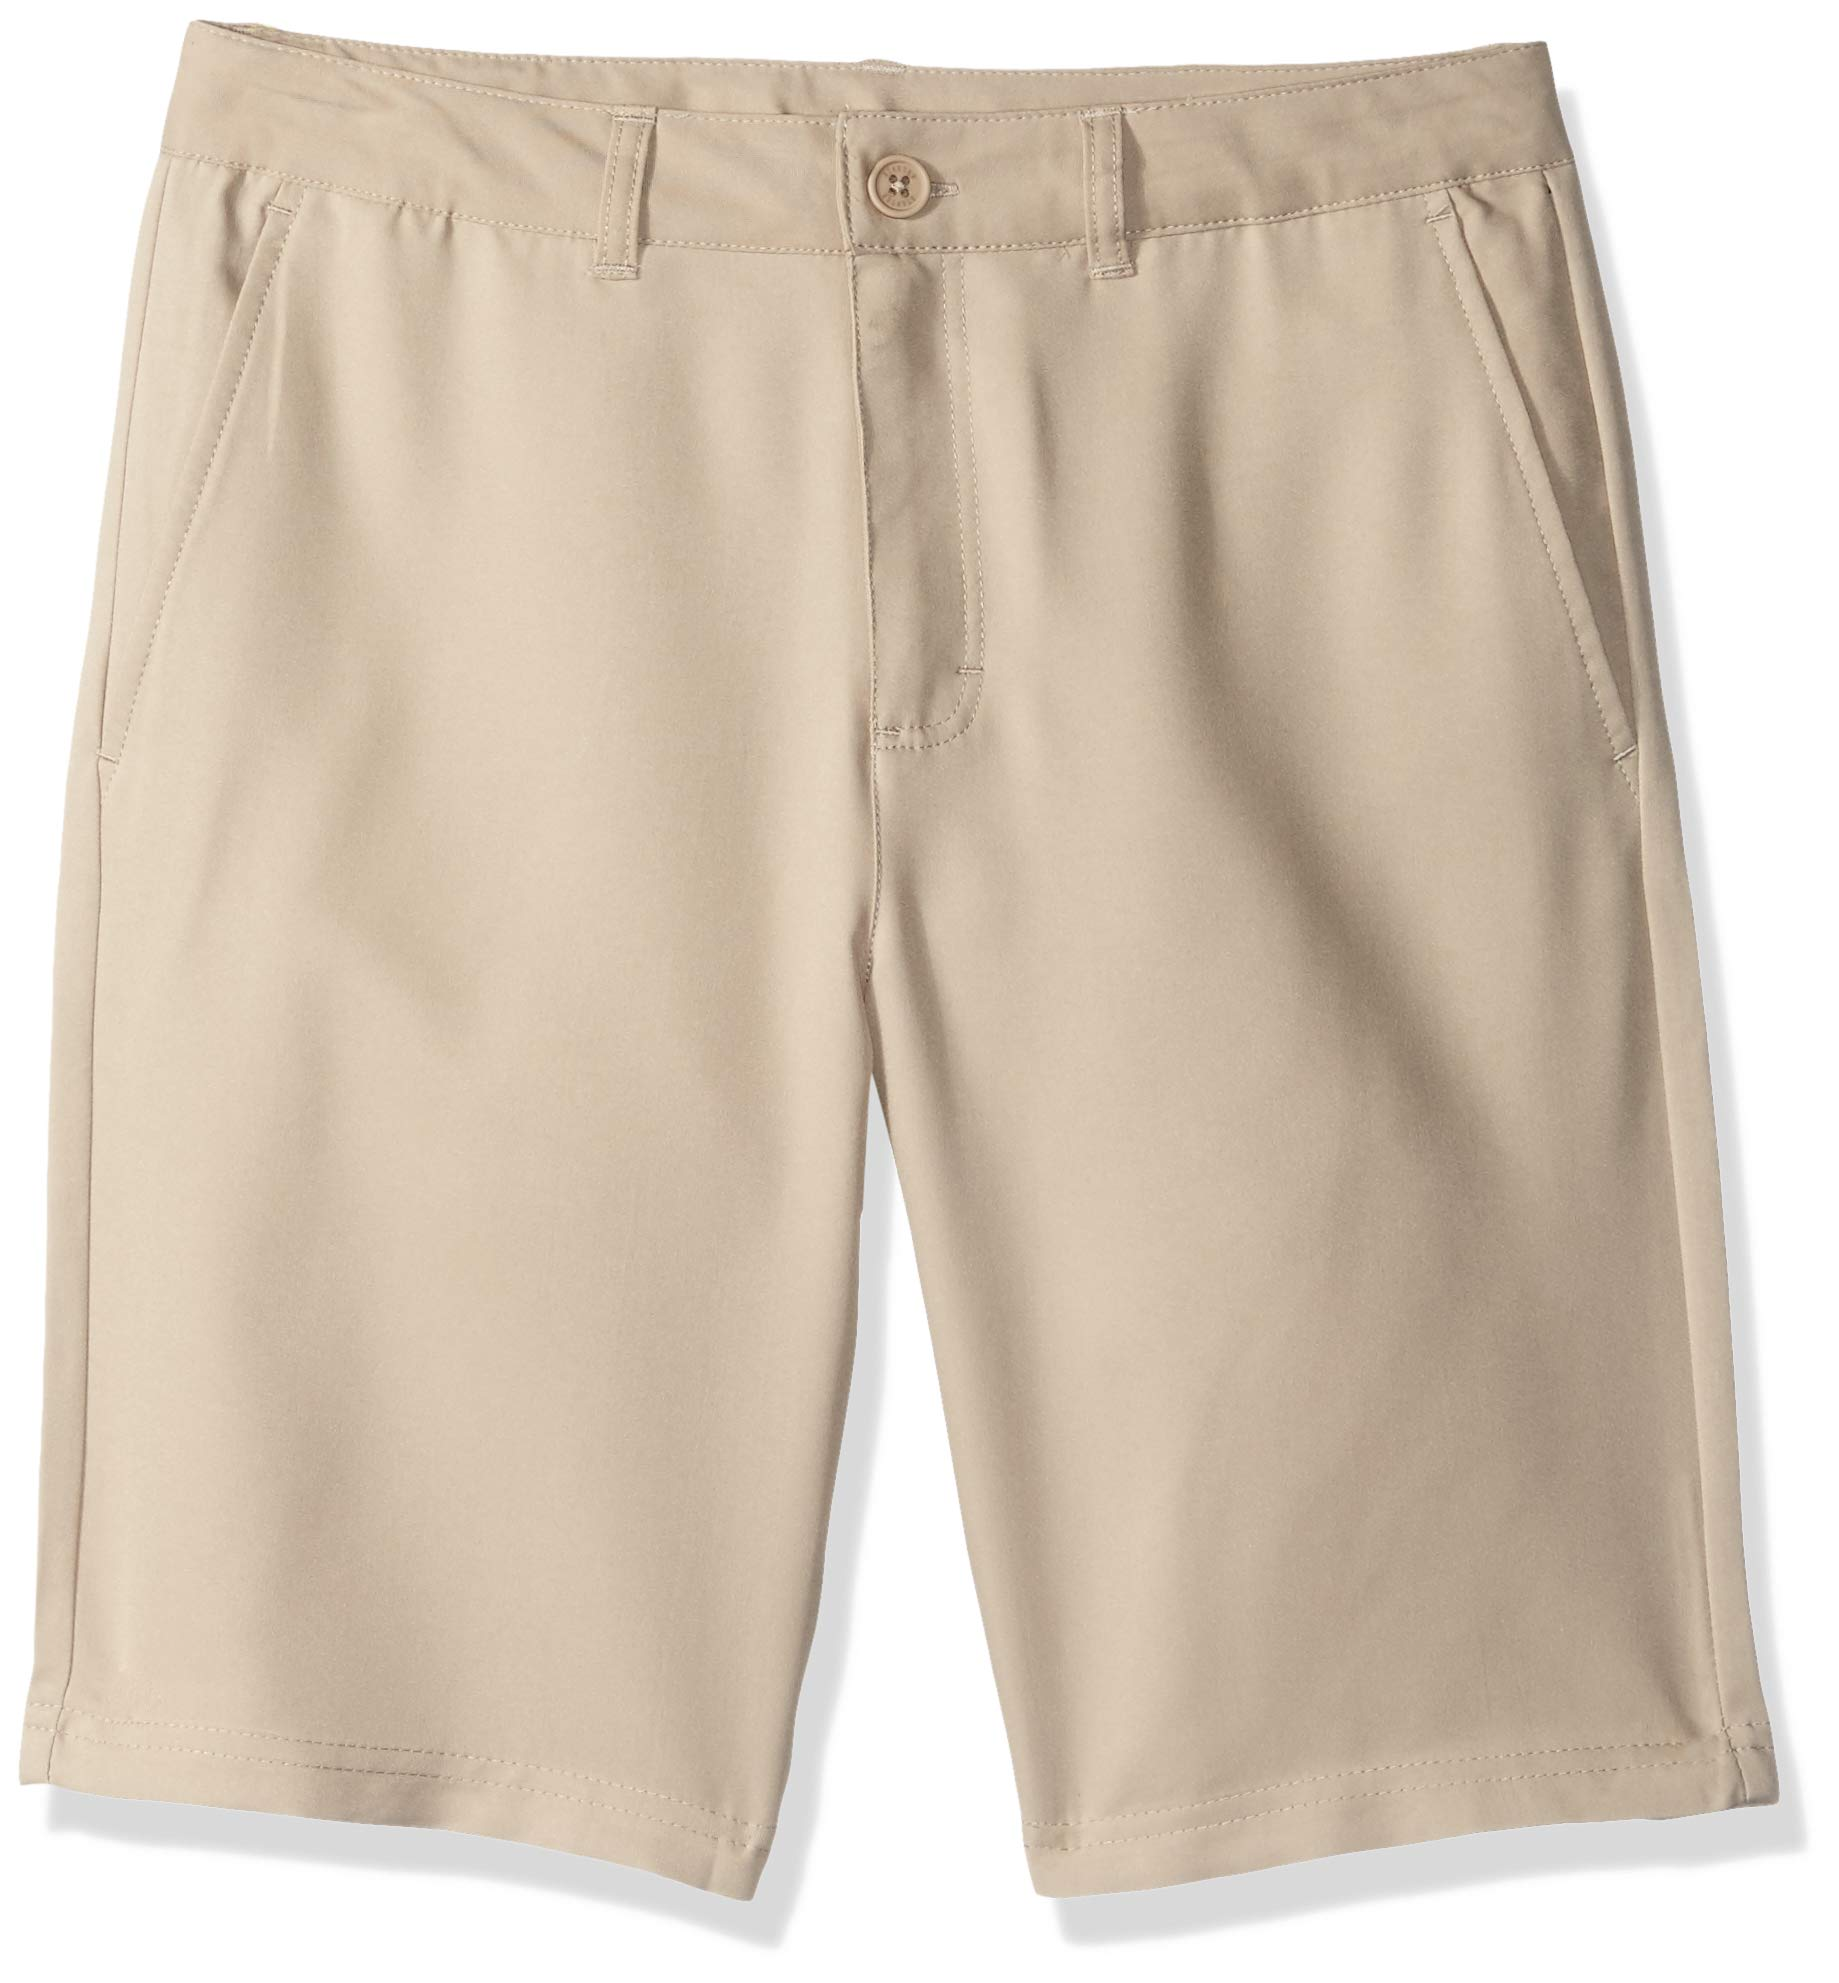 Starter Boys' 9'' Golf Club Shorts with Pockets, Khaki, S (6/7)